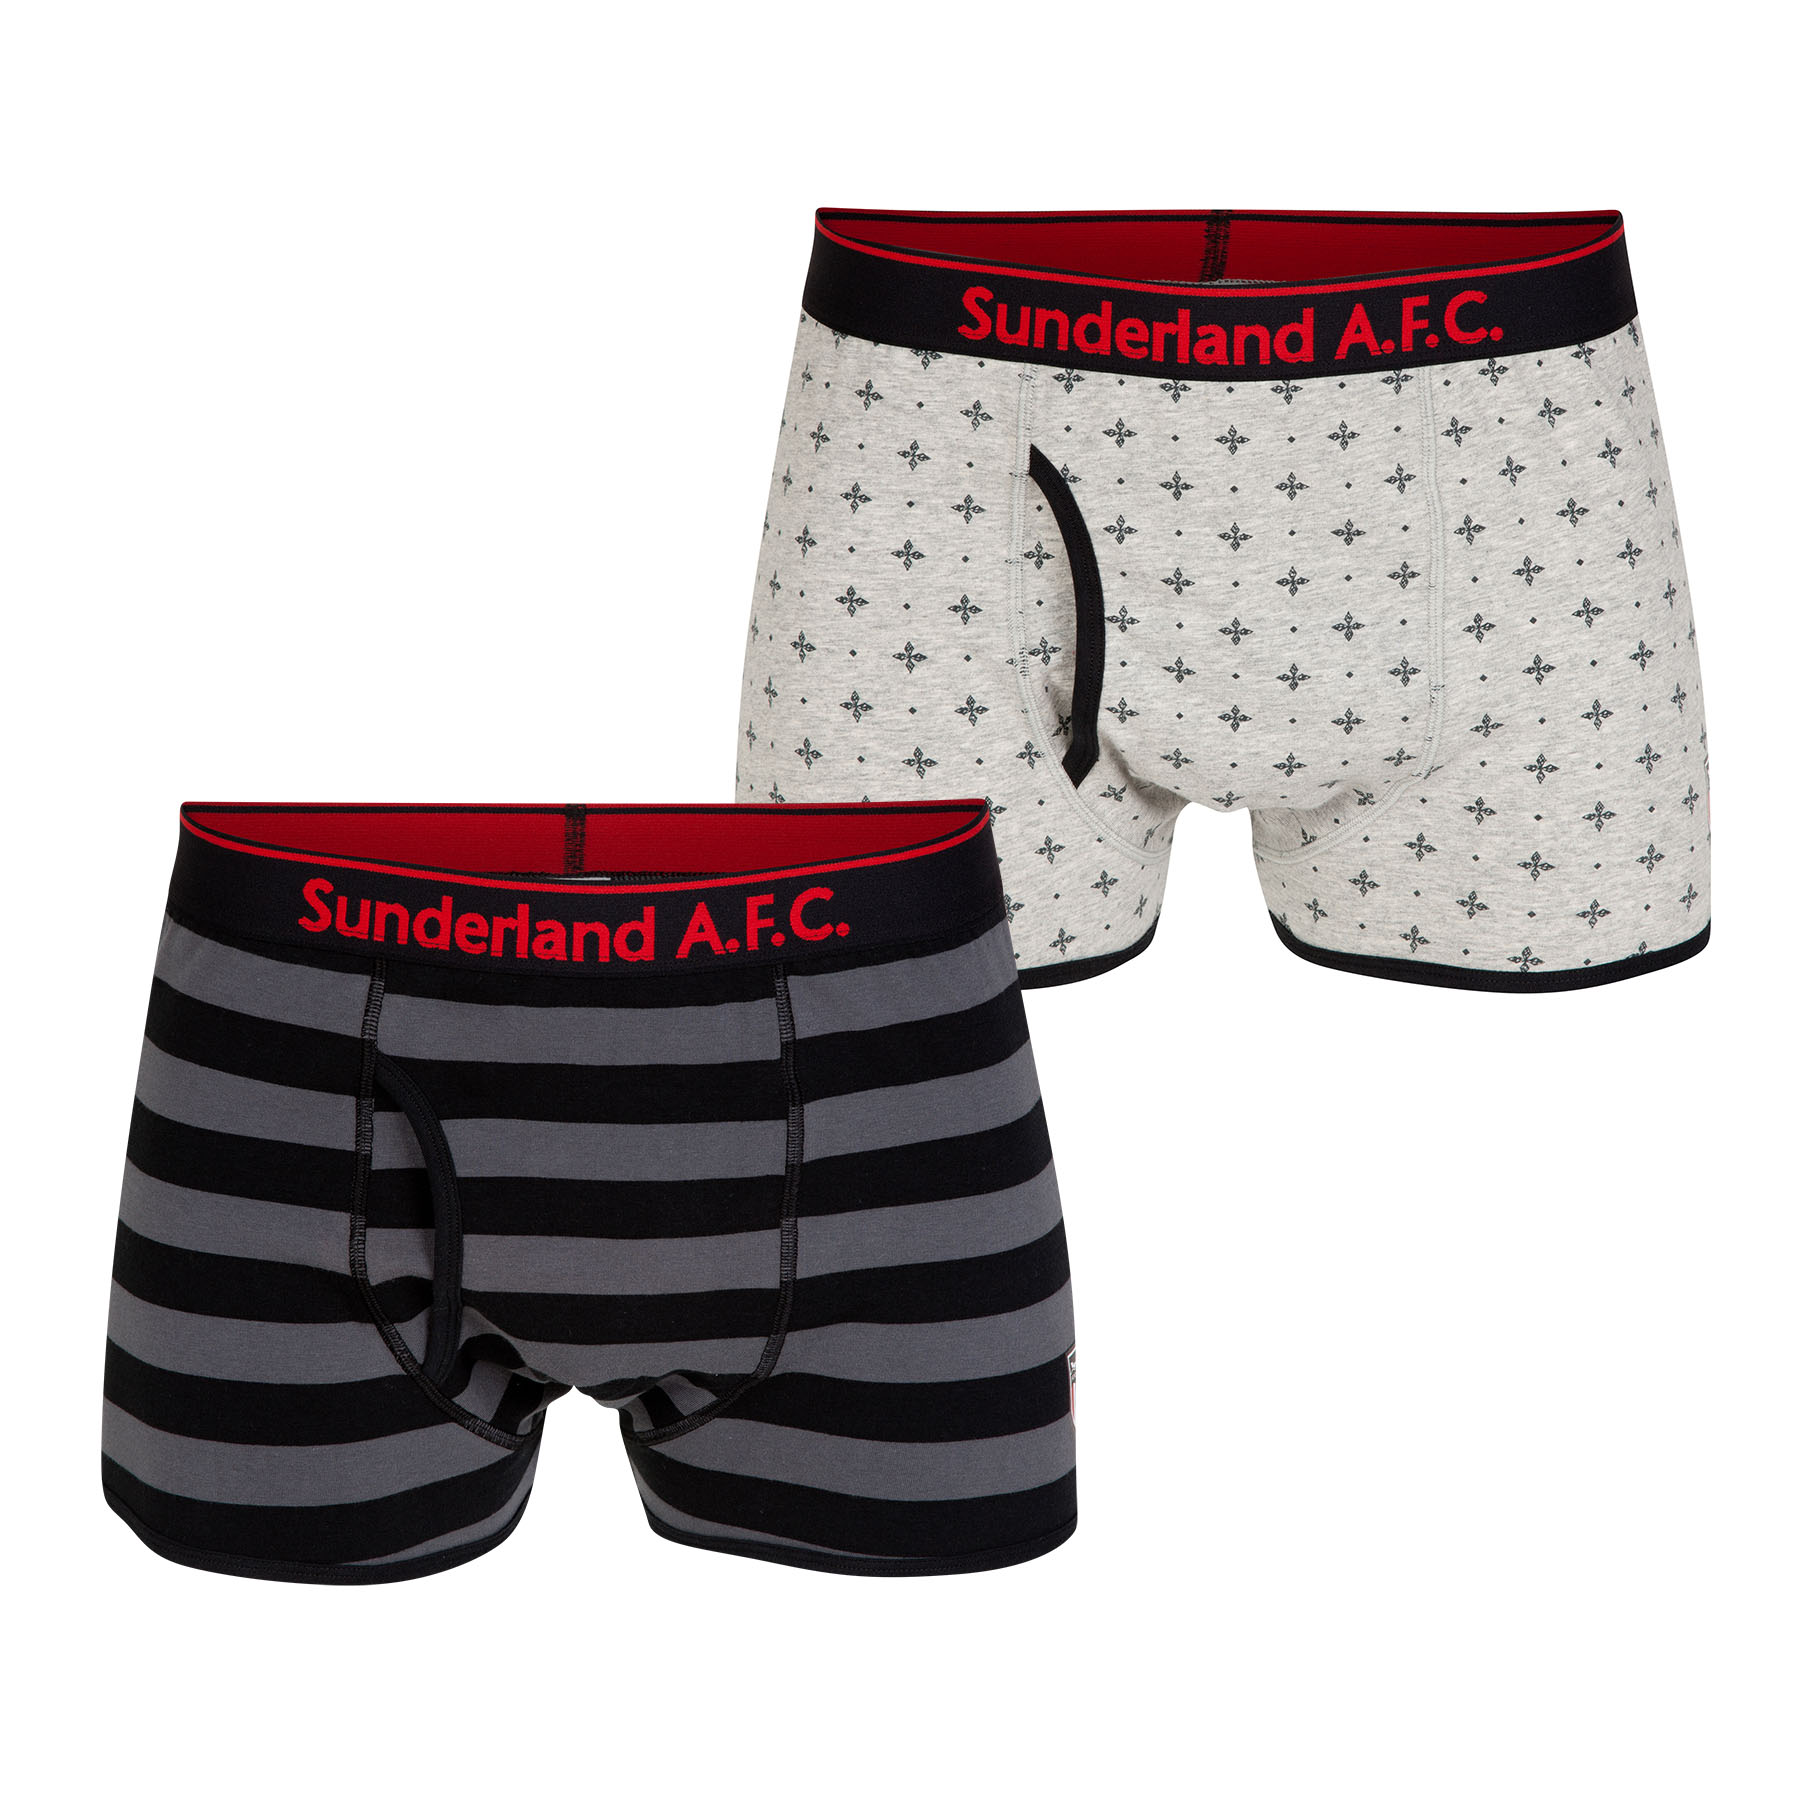 Sunderland 2pk Boxer Shorts - Black/Grey - Mens